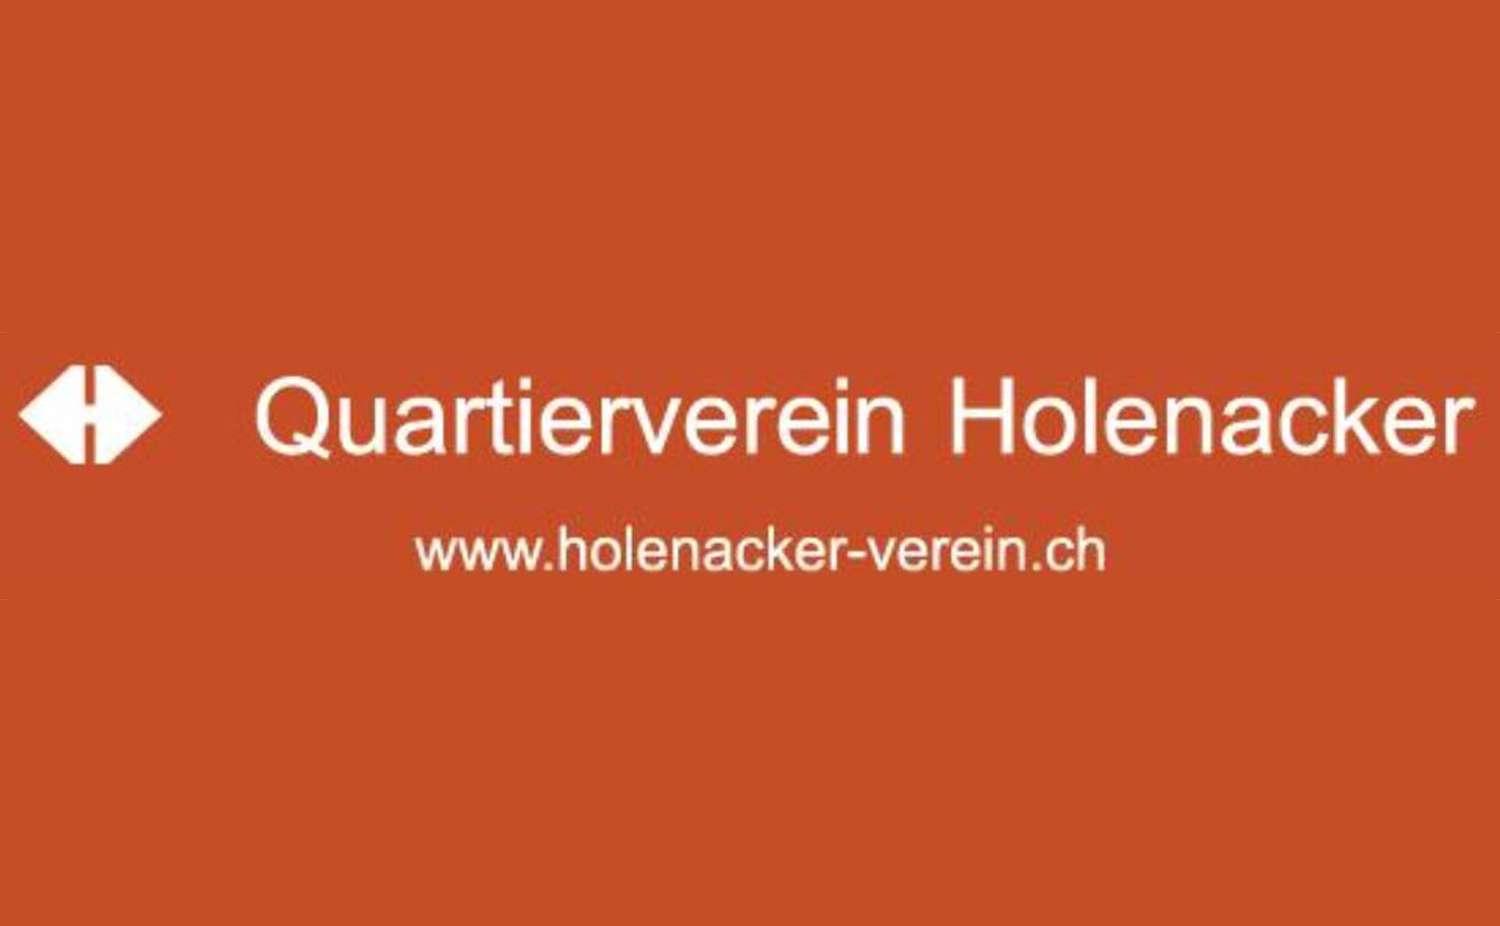 Logo Quartierverein Holenacker